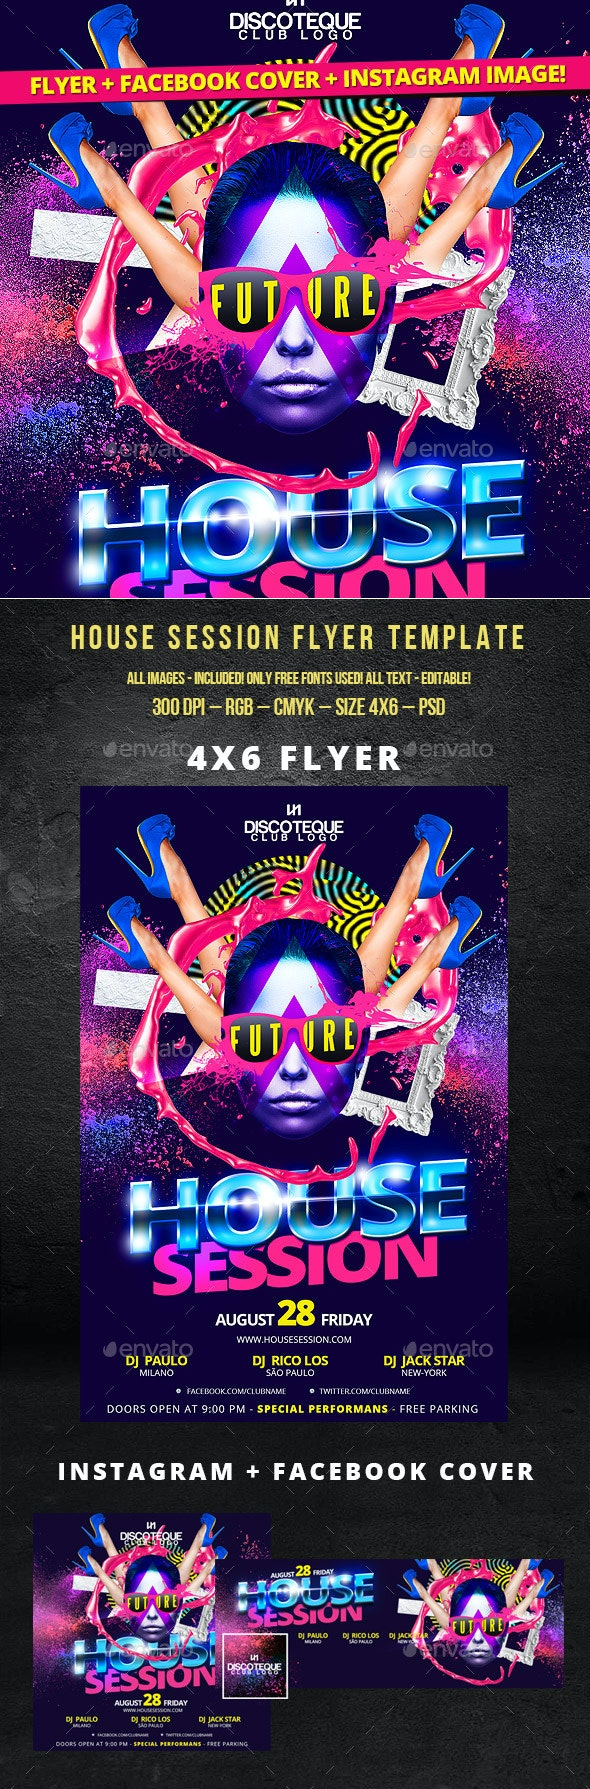 30 Free Nightclub Flyer Templates for Hot Parties Promotion Free